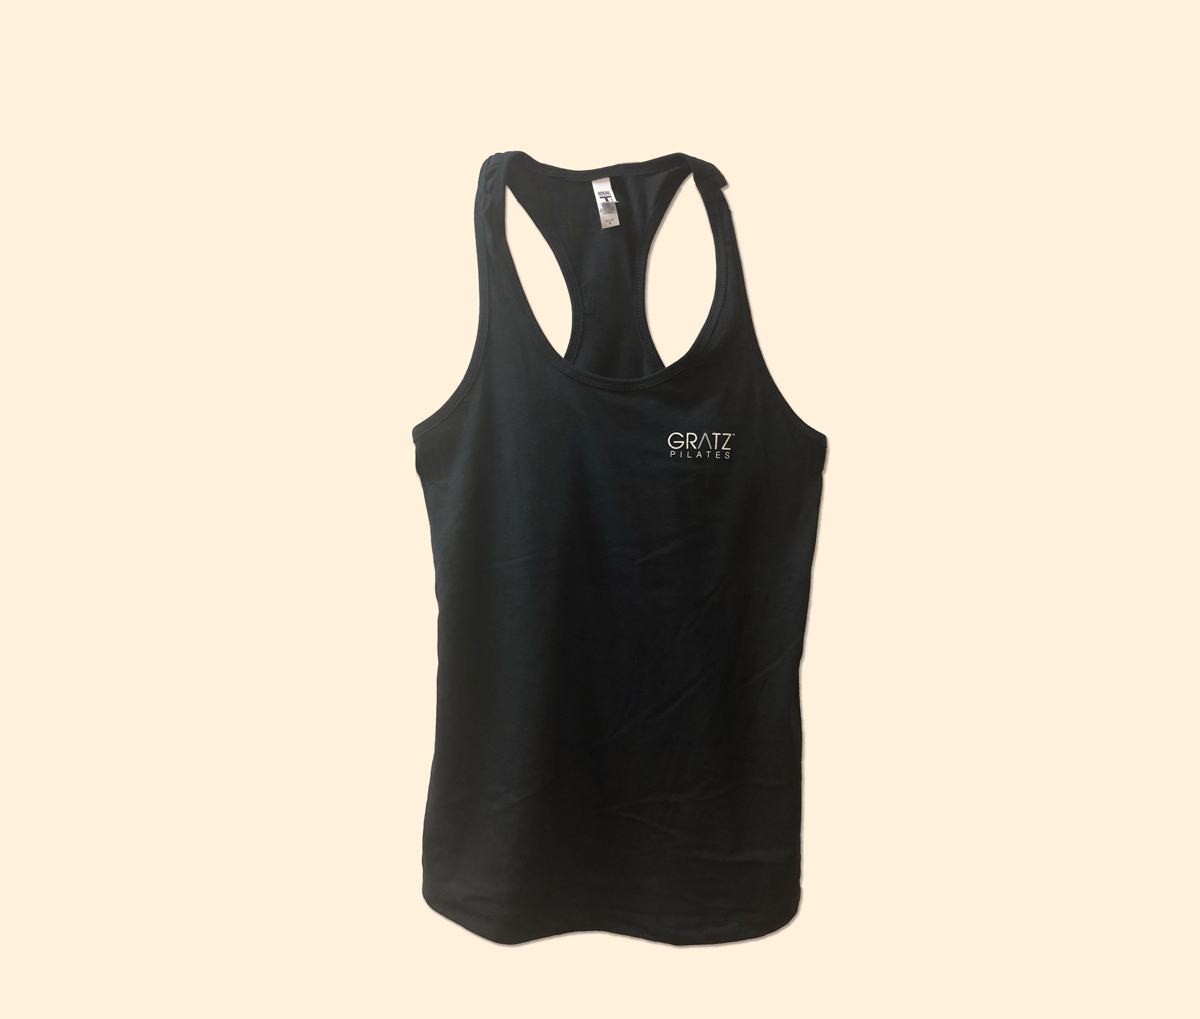 GRATZ Women's Racerback Sleeveless T-Black